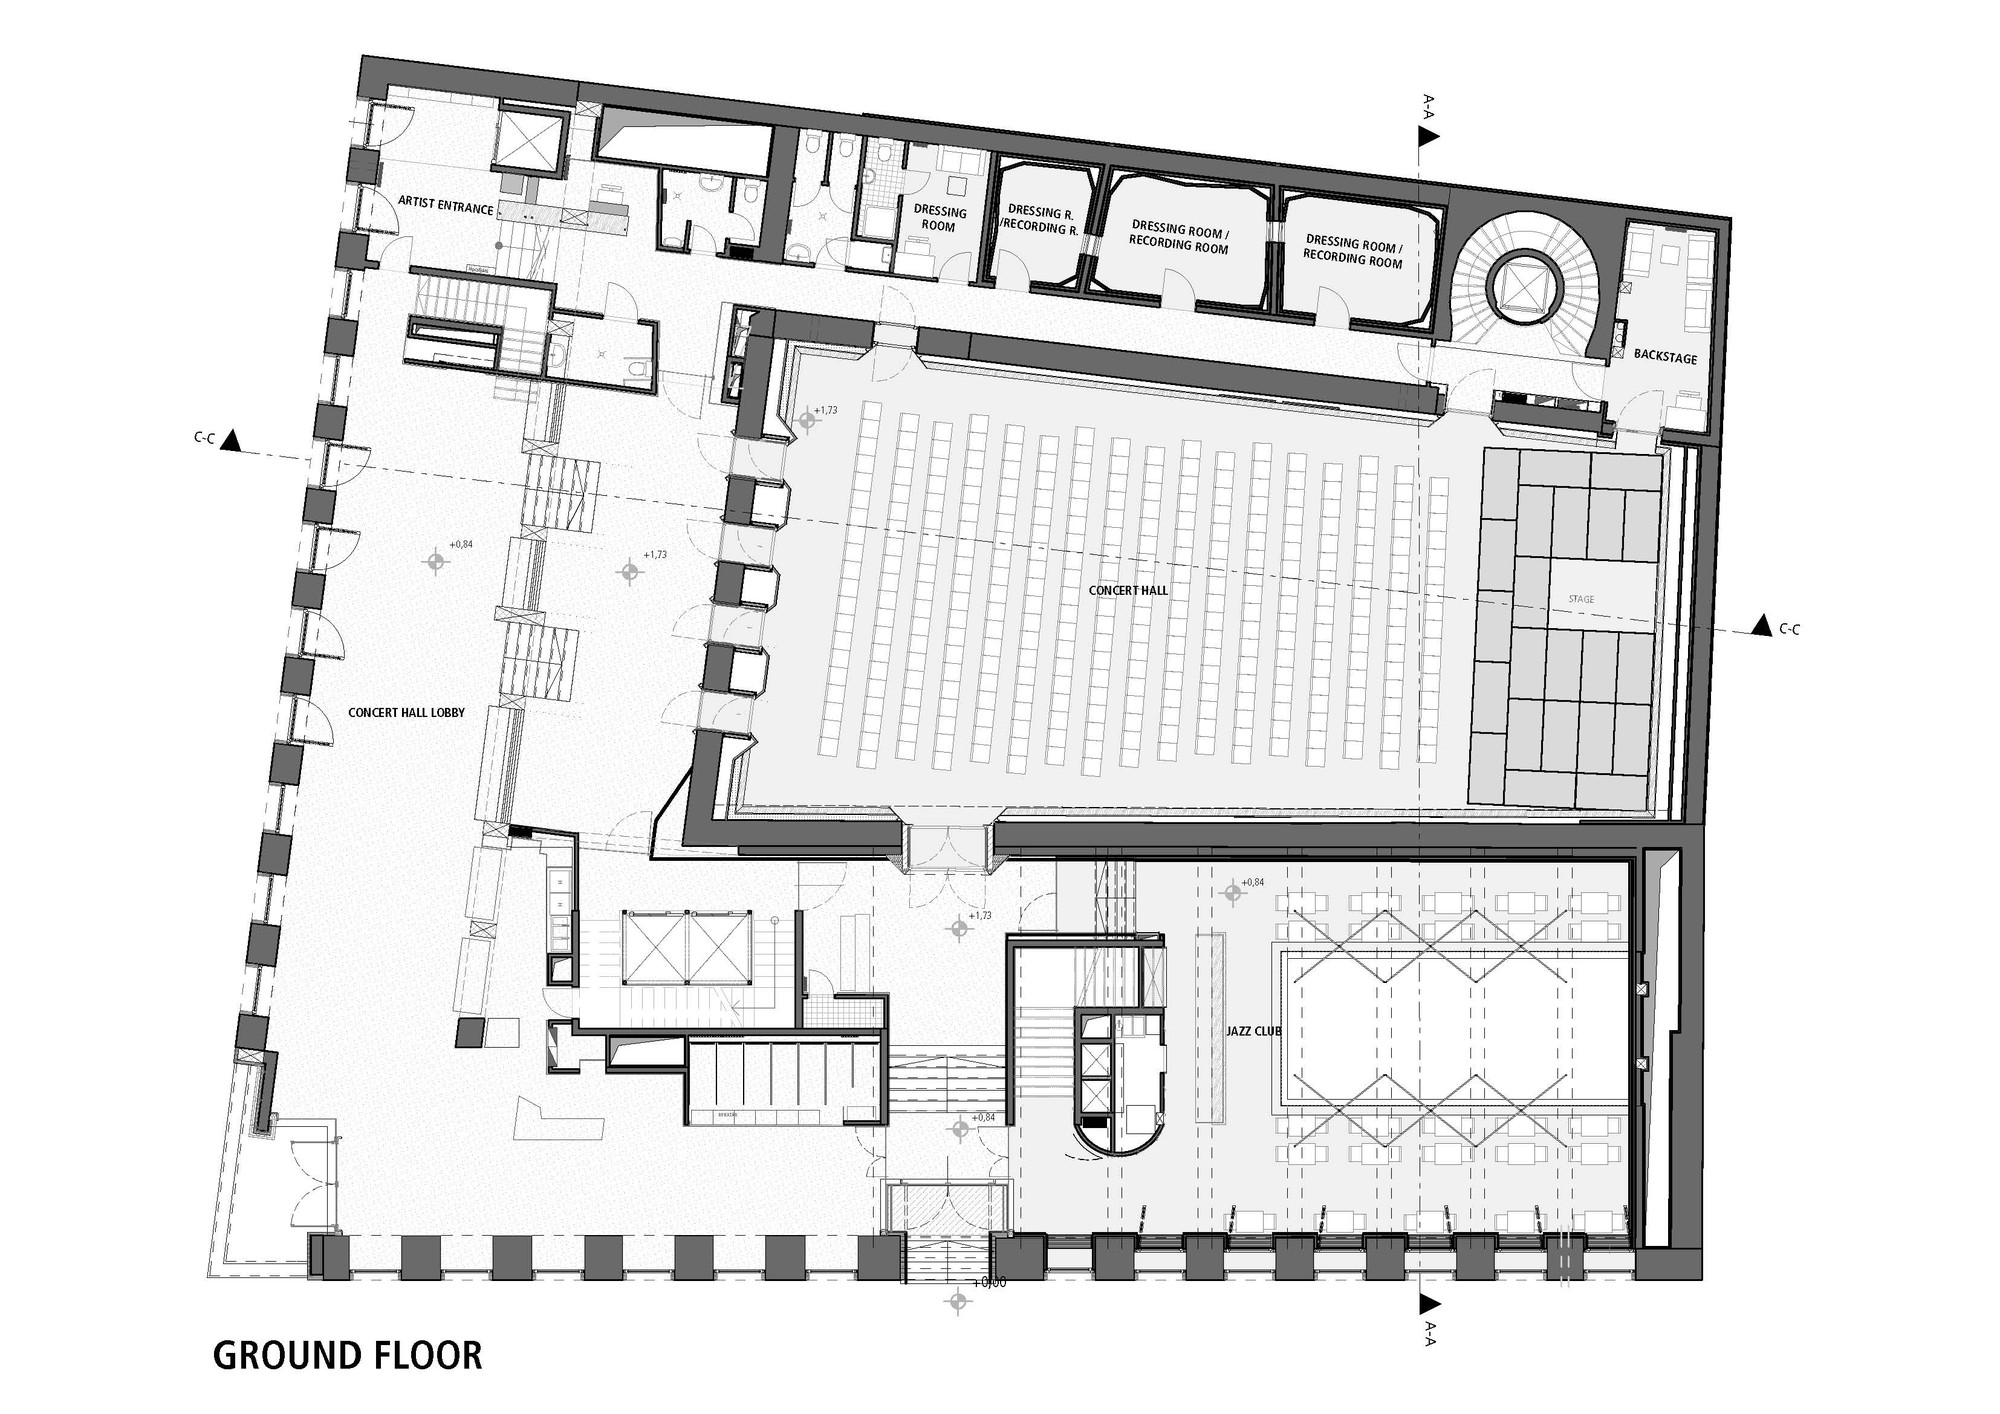 Gallery of budapest music center art1st design studio 32 for Recording studio floor plans architecture